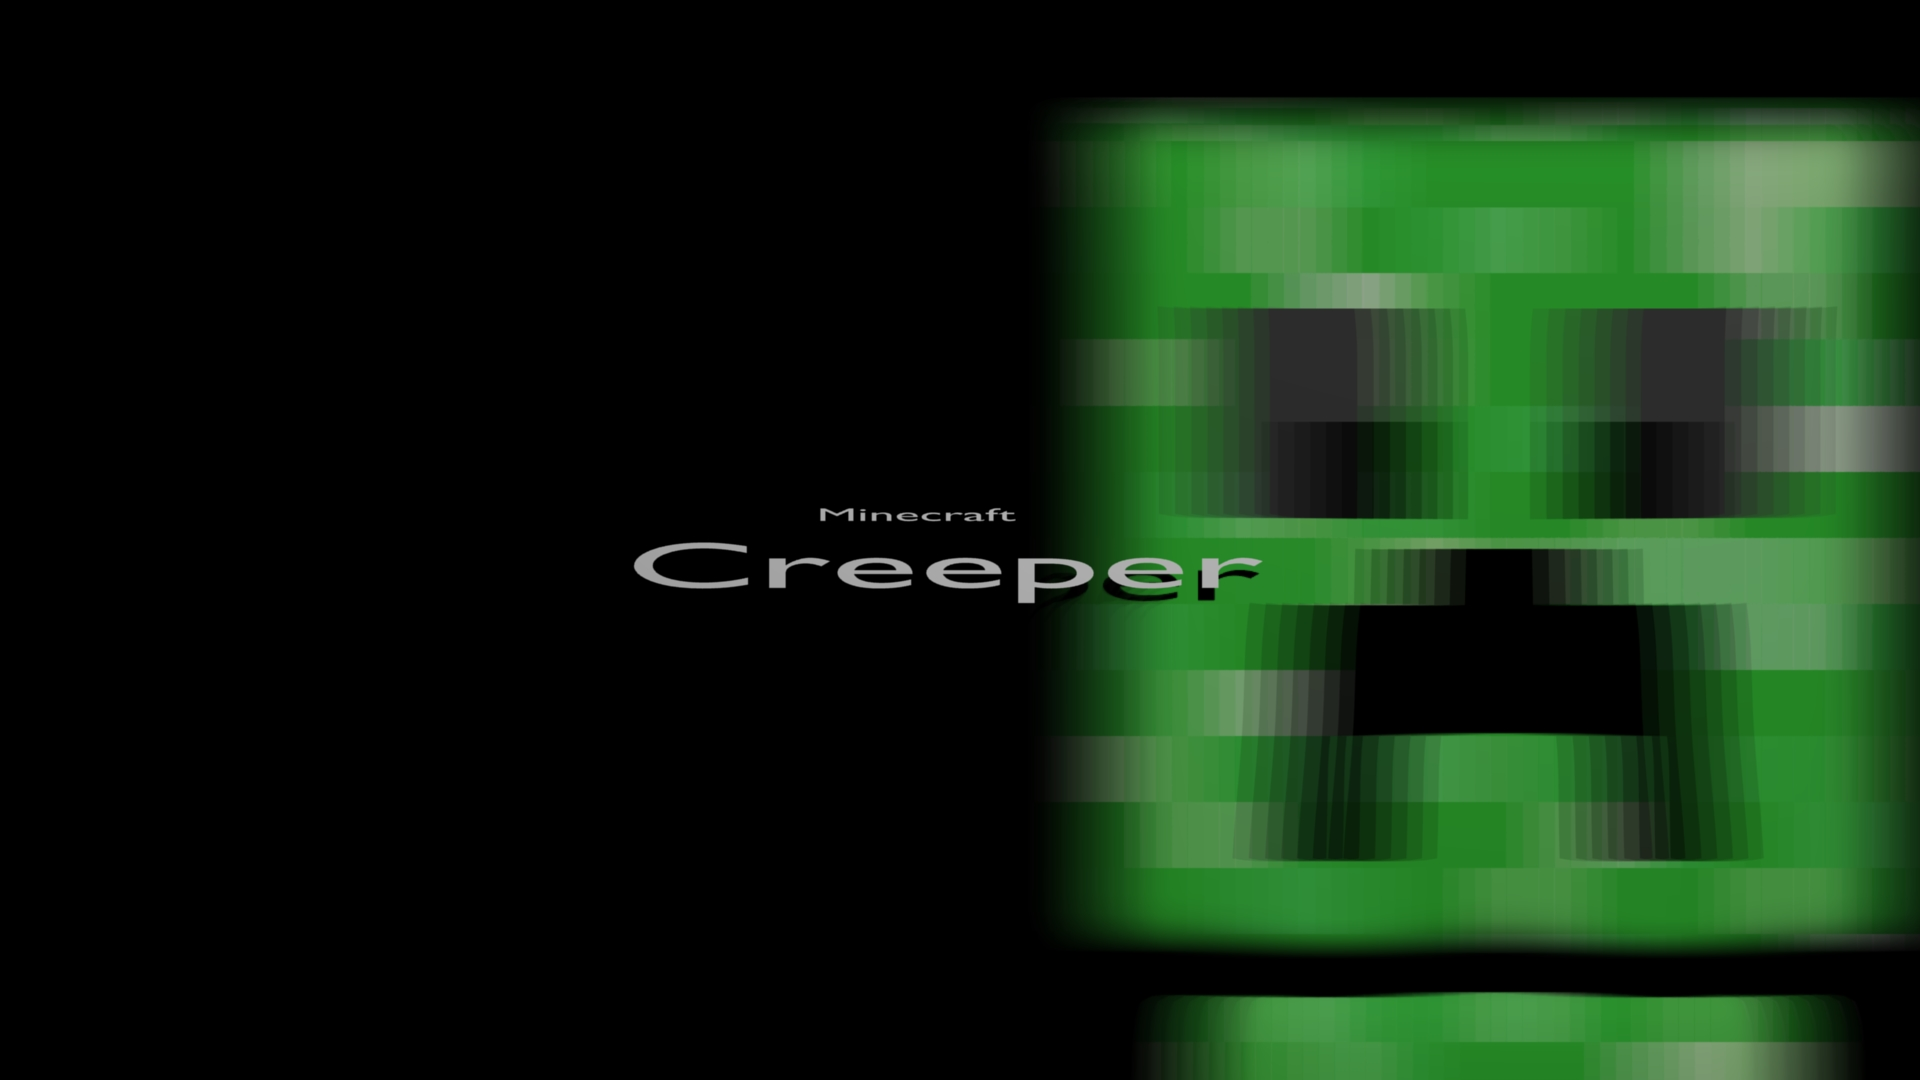 Minecraft Cool Wallpapers Creeper Creeper Minecraft Cool 1920x1080